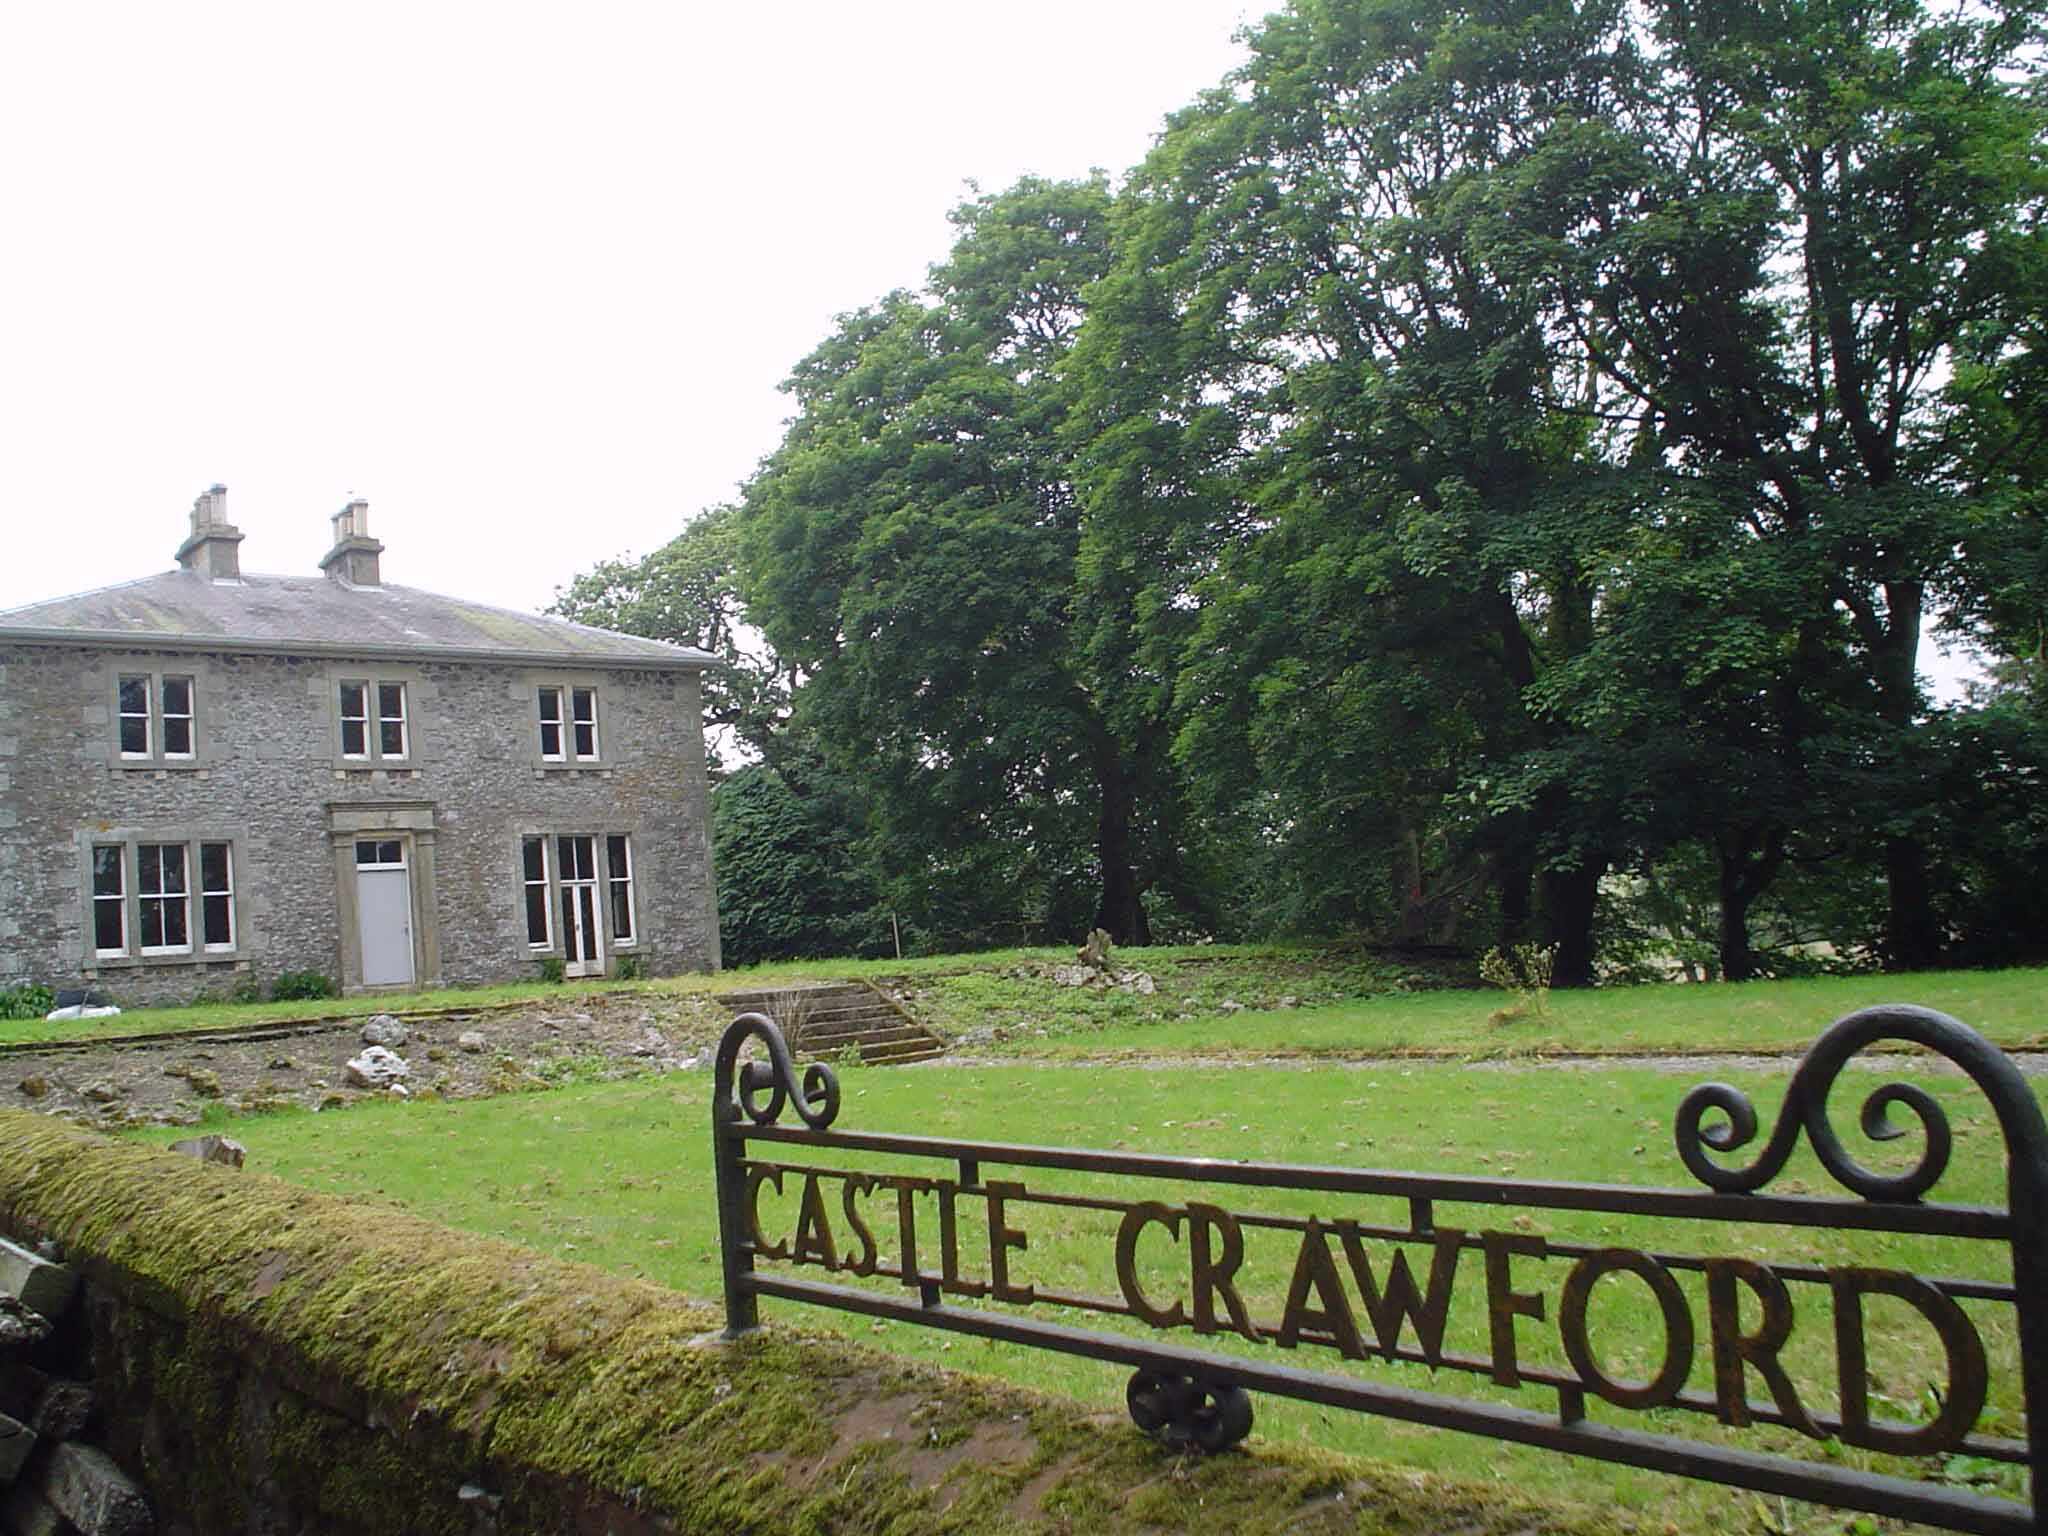 Crawford castle military wiki fandom powered by wikia for Crawford house